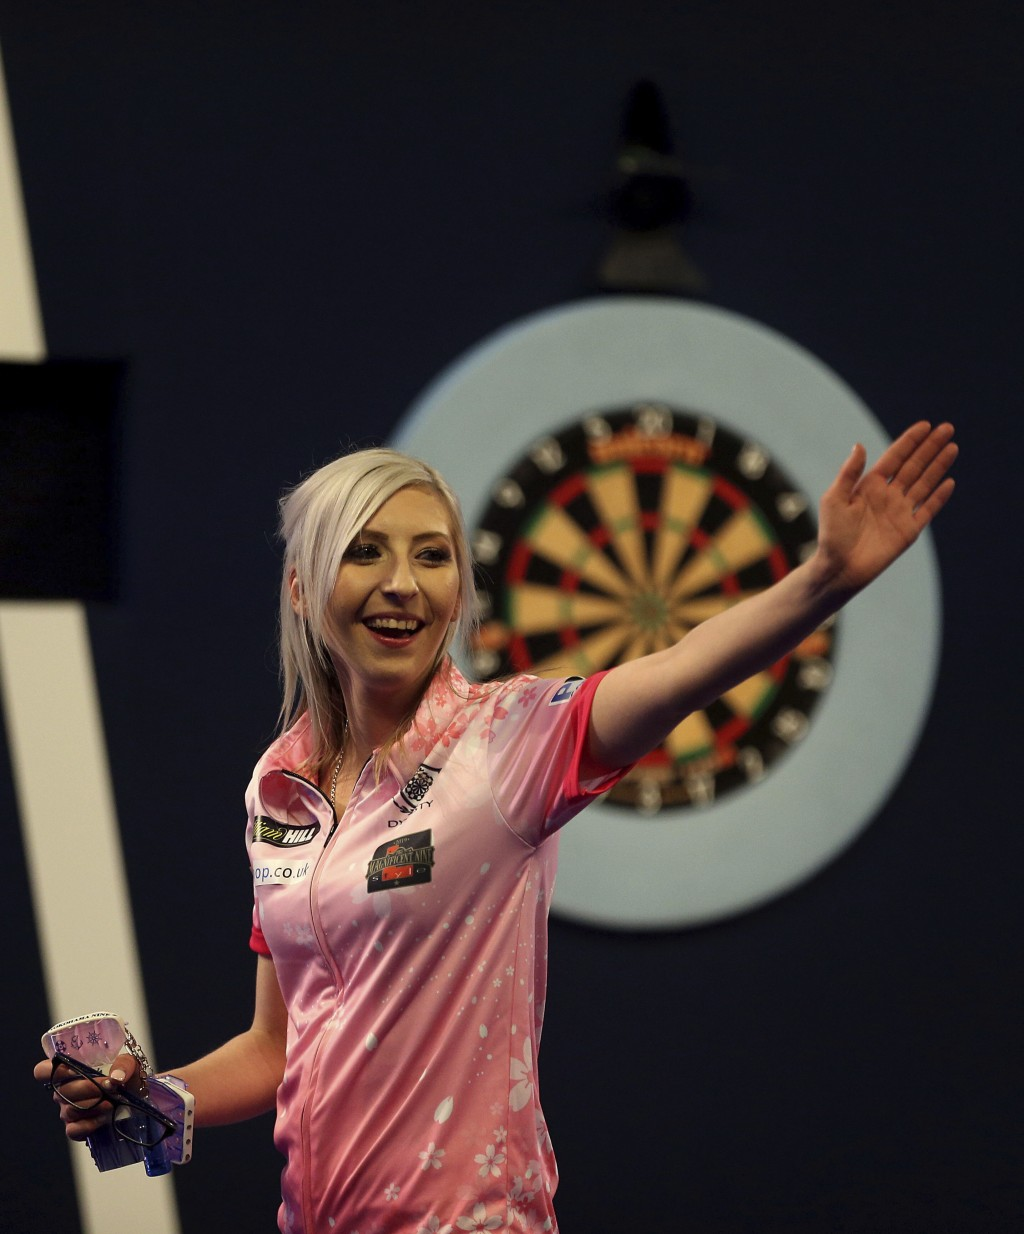 Fallon Sherrock celebrating after becoming the first women to win a game in the PDC Darts World Championship at Alexandra Palace, London, Tuesday Dec....